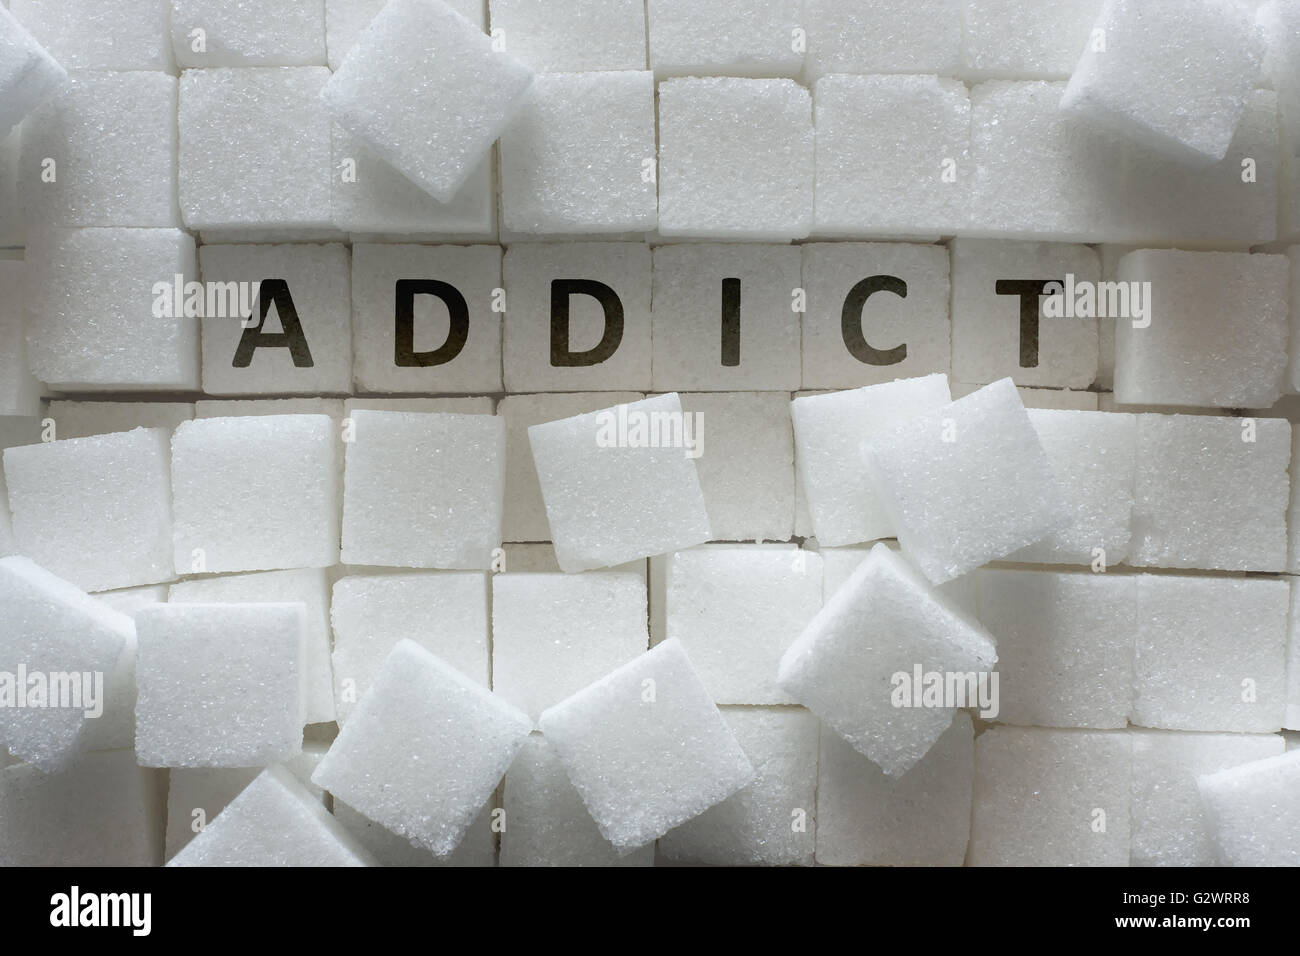 Sugar cubes and 'addict' inscription - Stock Image